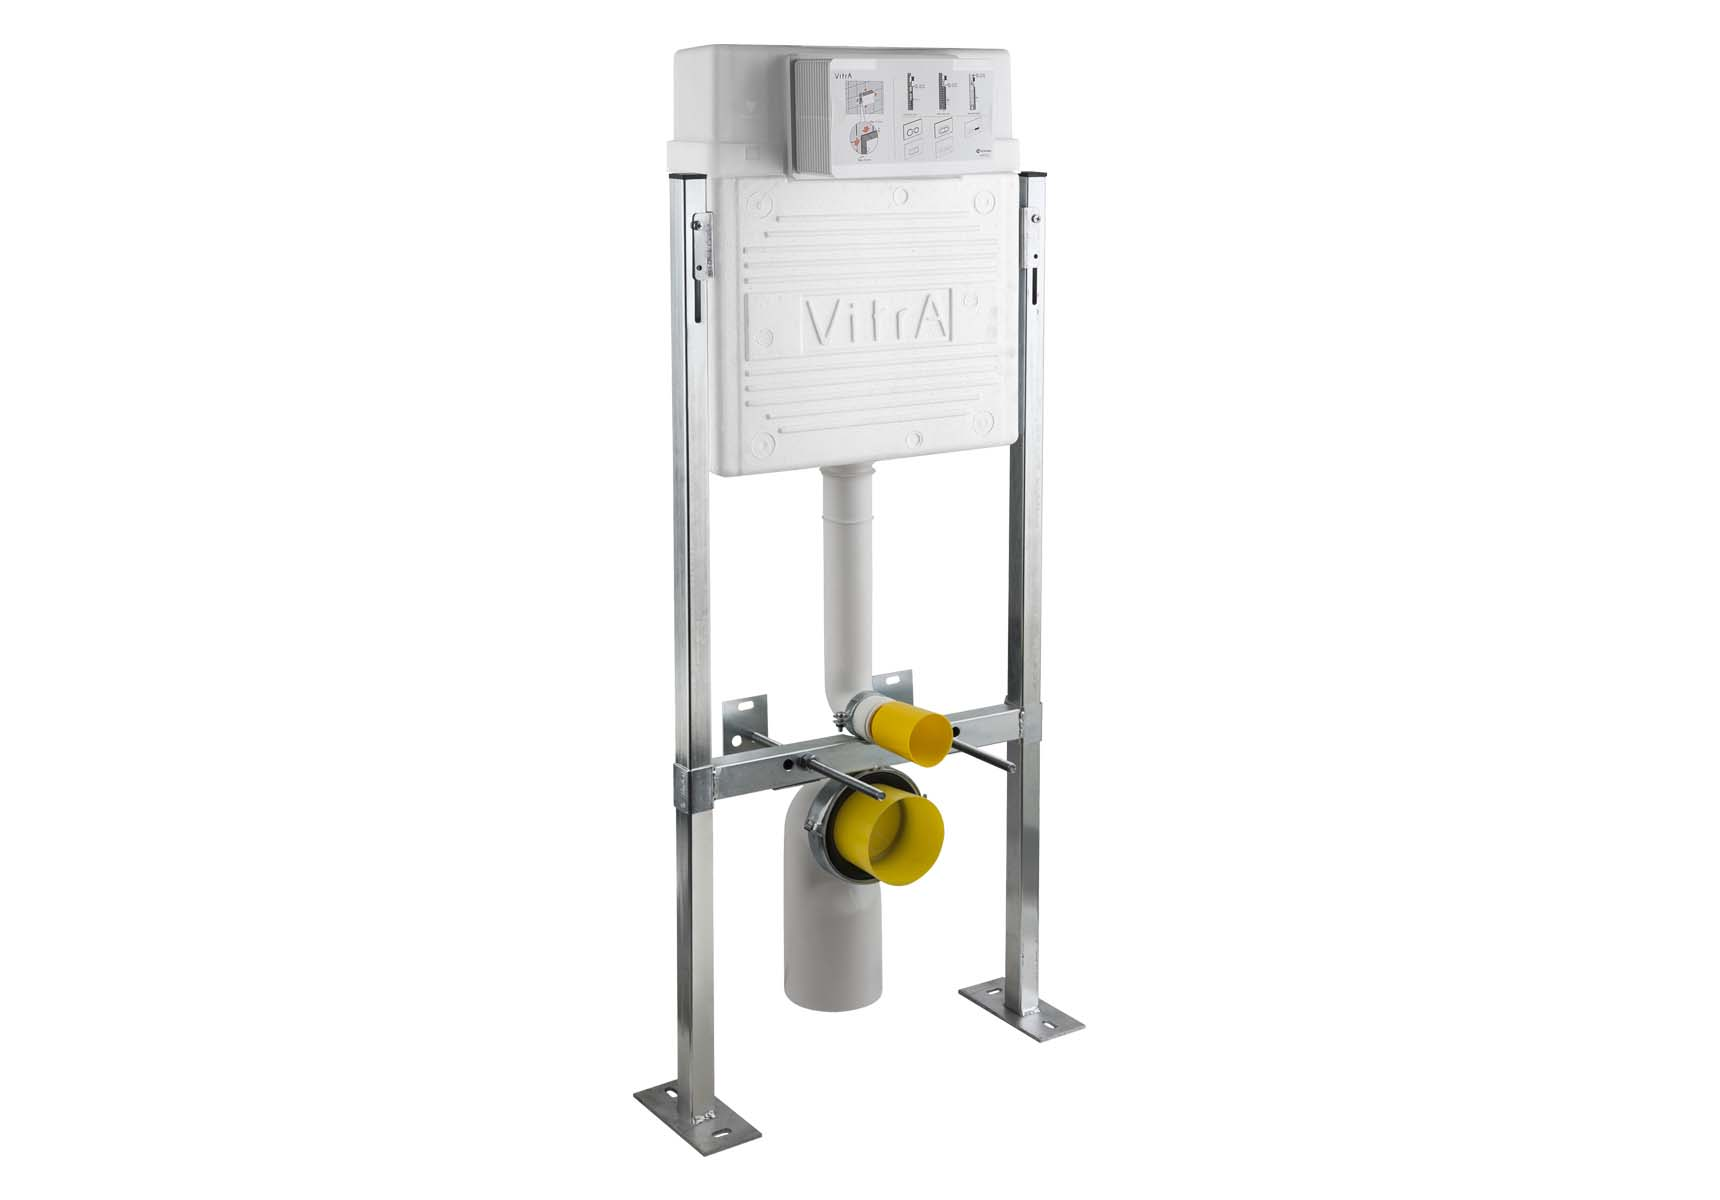 Standard Installation - Set For Wall-Hung Wc Pans Additional Height Adjustment To Locate Bottom Of Control Panel 88 To 98 cm From The Finished Floor